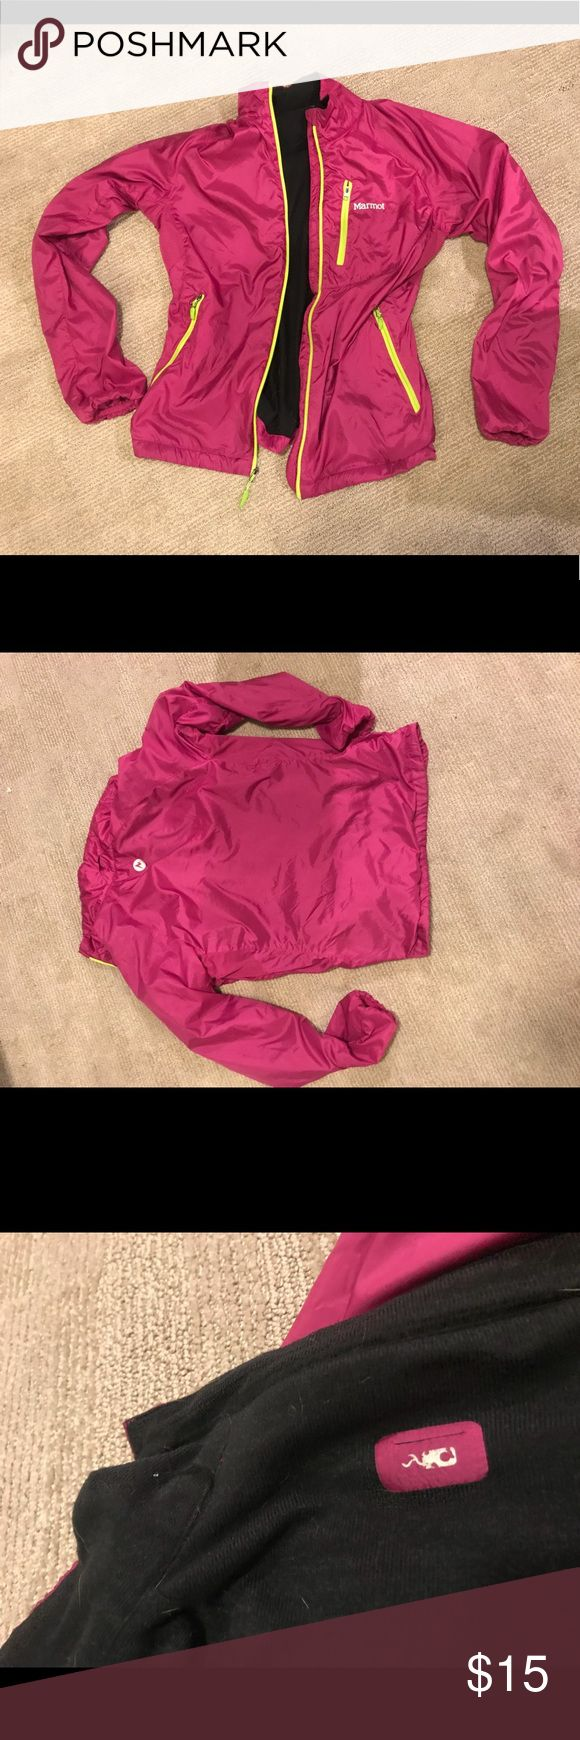 Marmot Running Jacket Lightly worn running jacket. Has pocket for Phone and home for earphones. Marmot Jackets & Coats